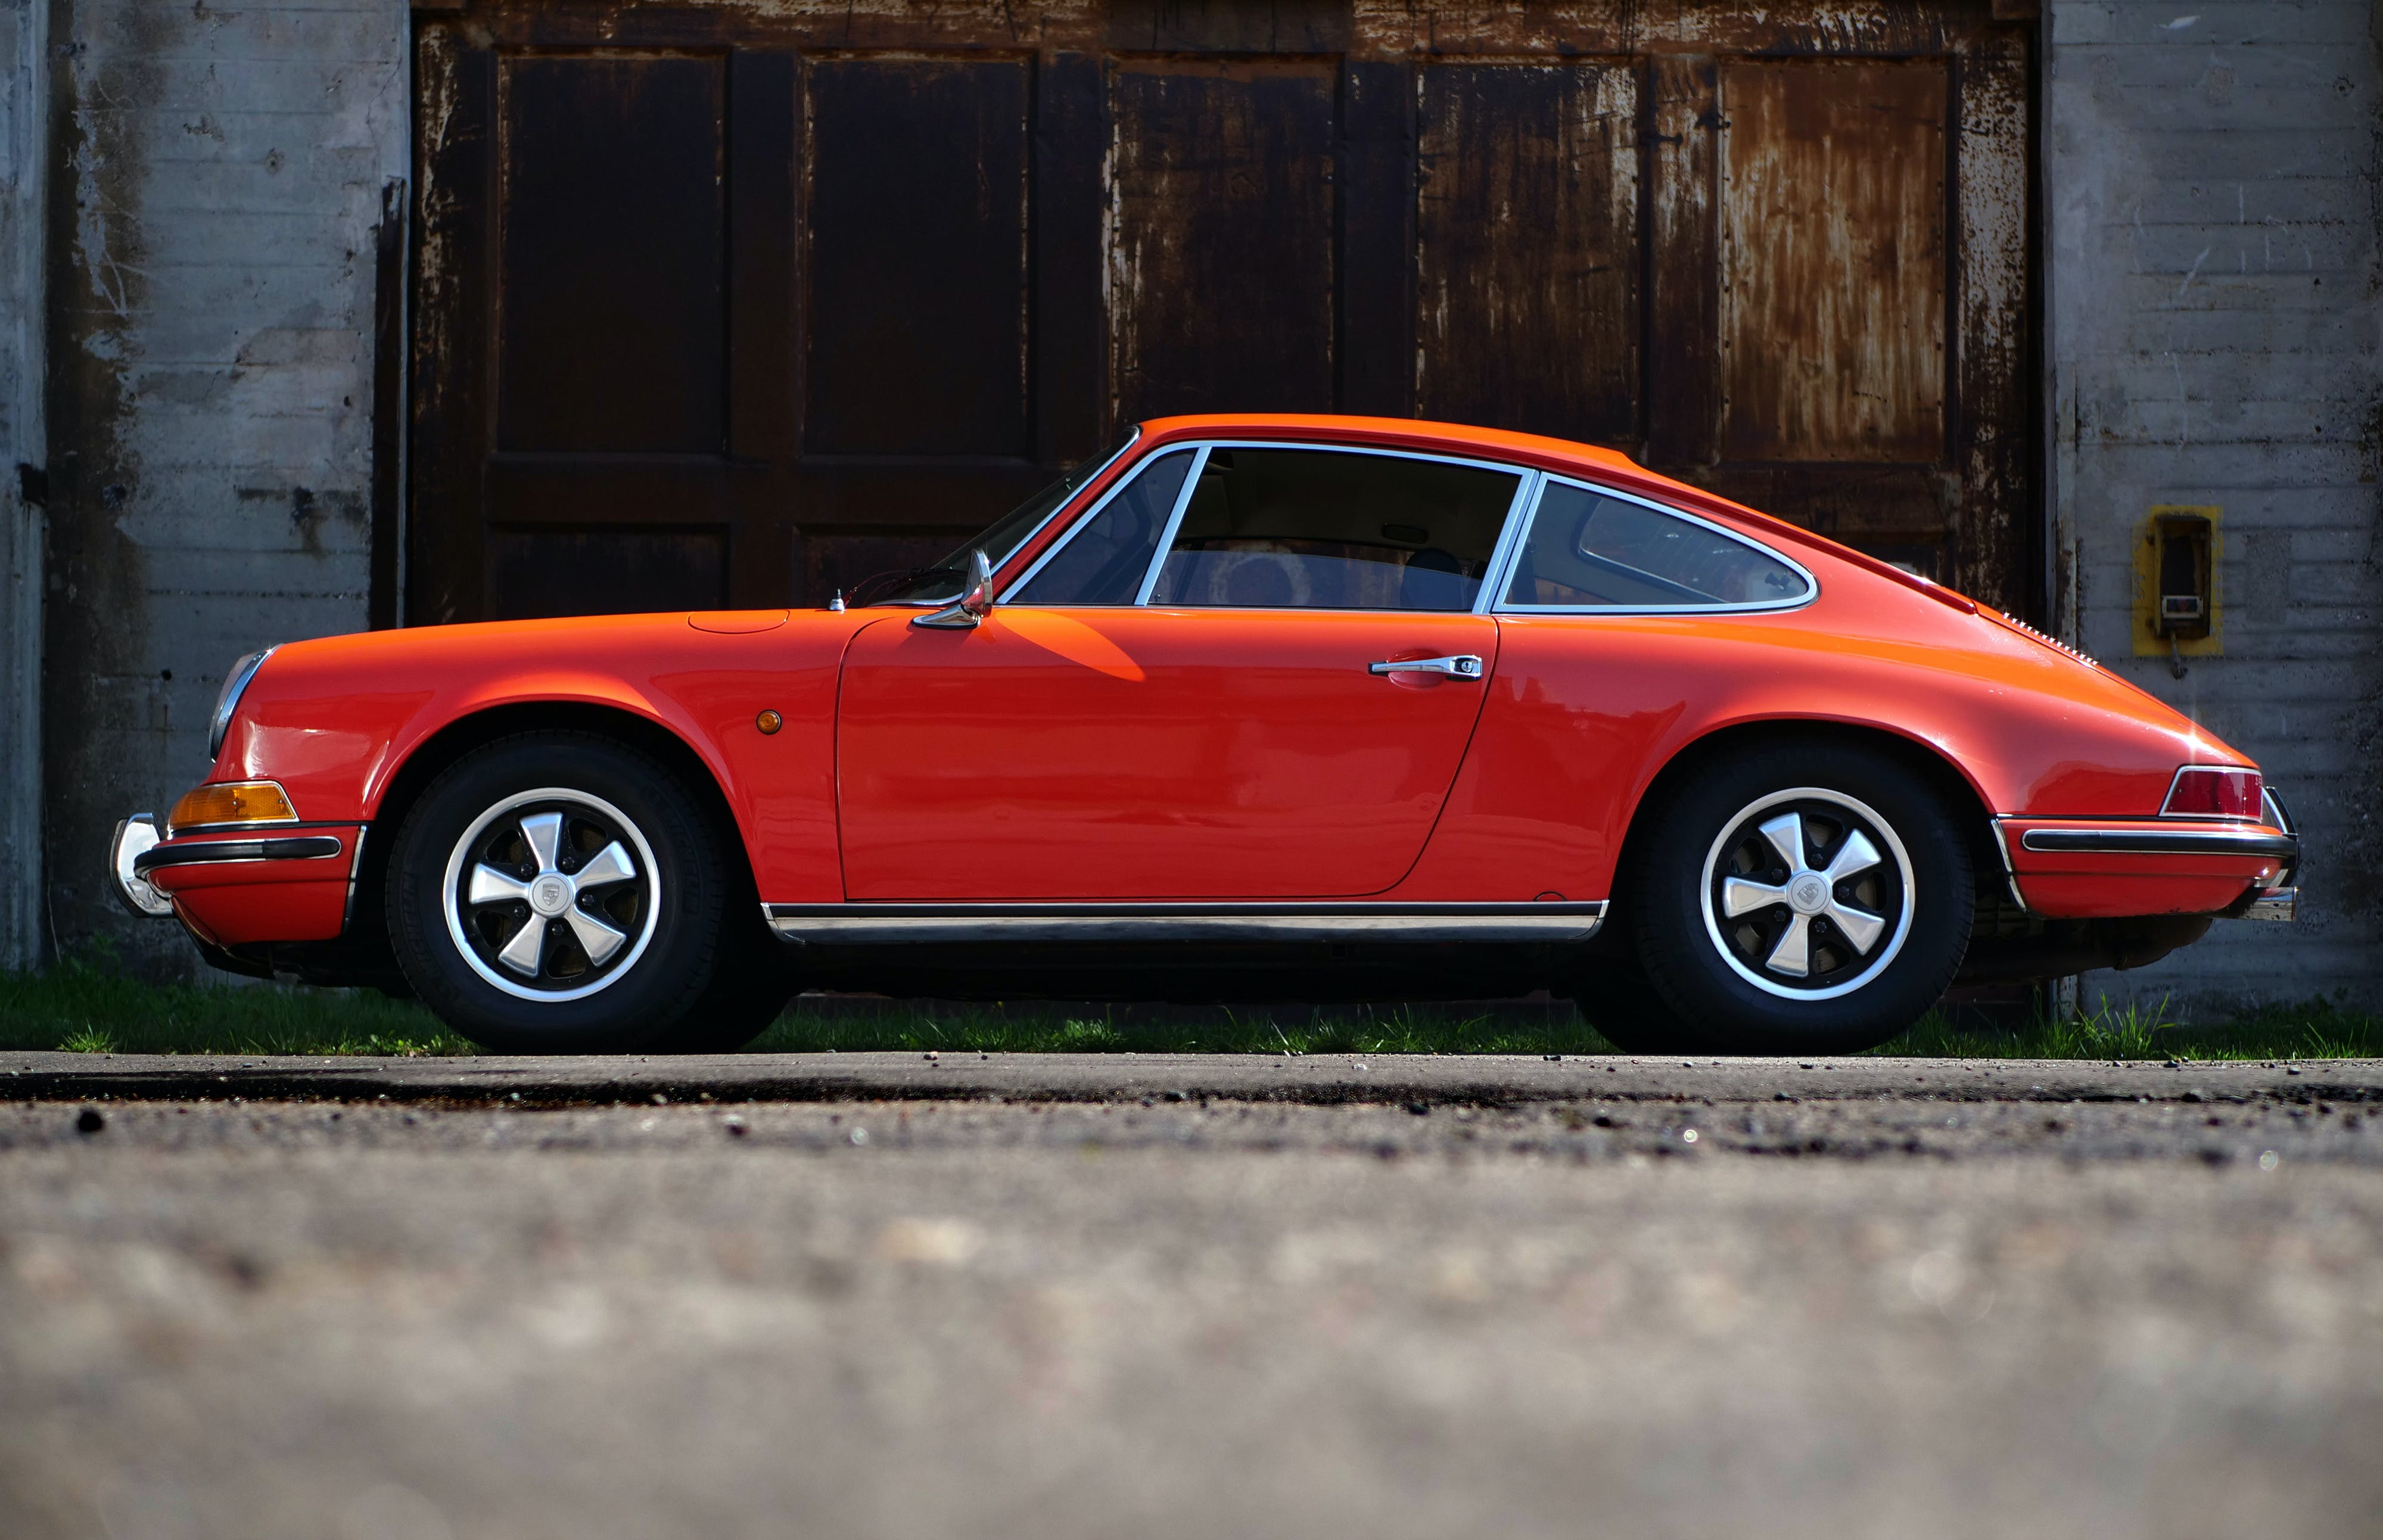 Orange Fastback Car Near Wall